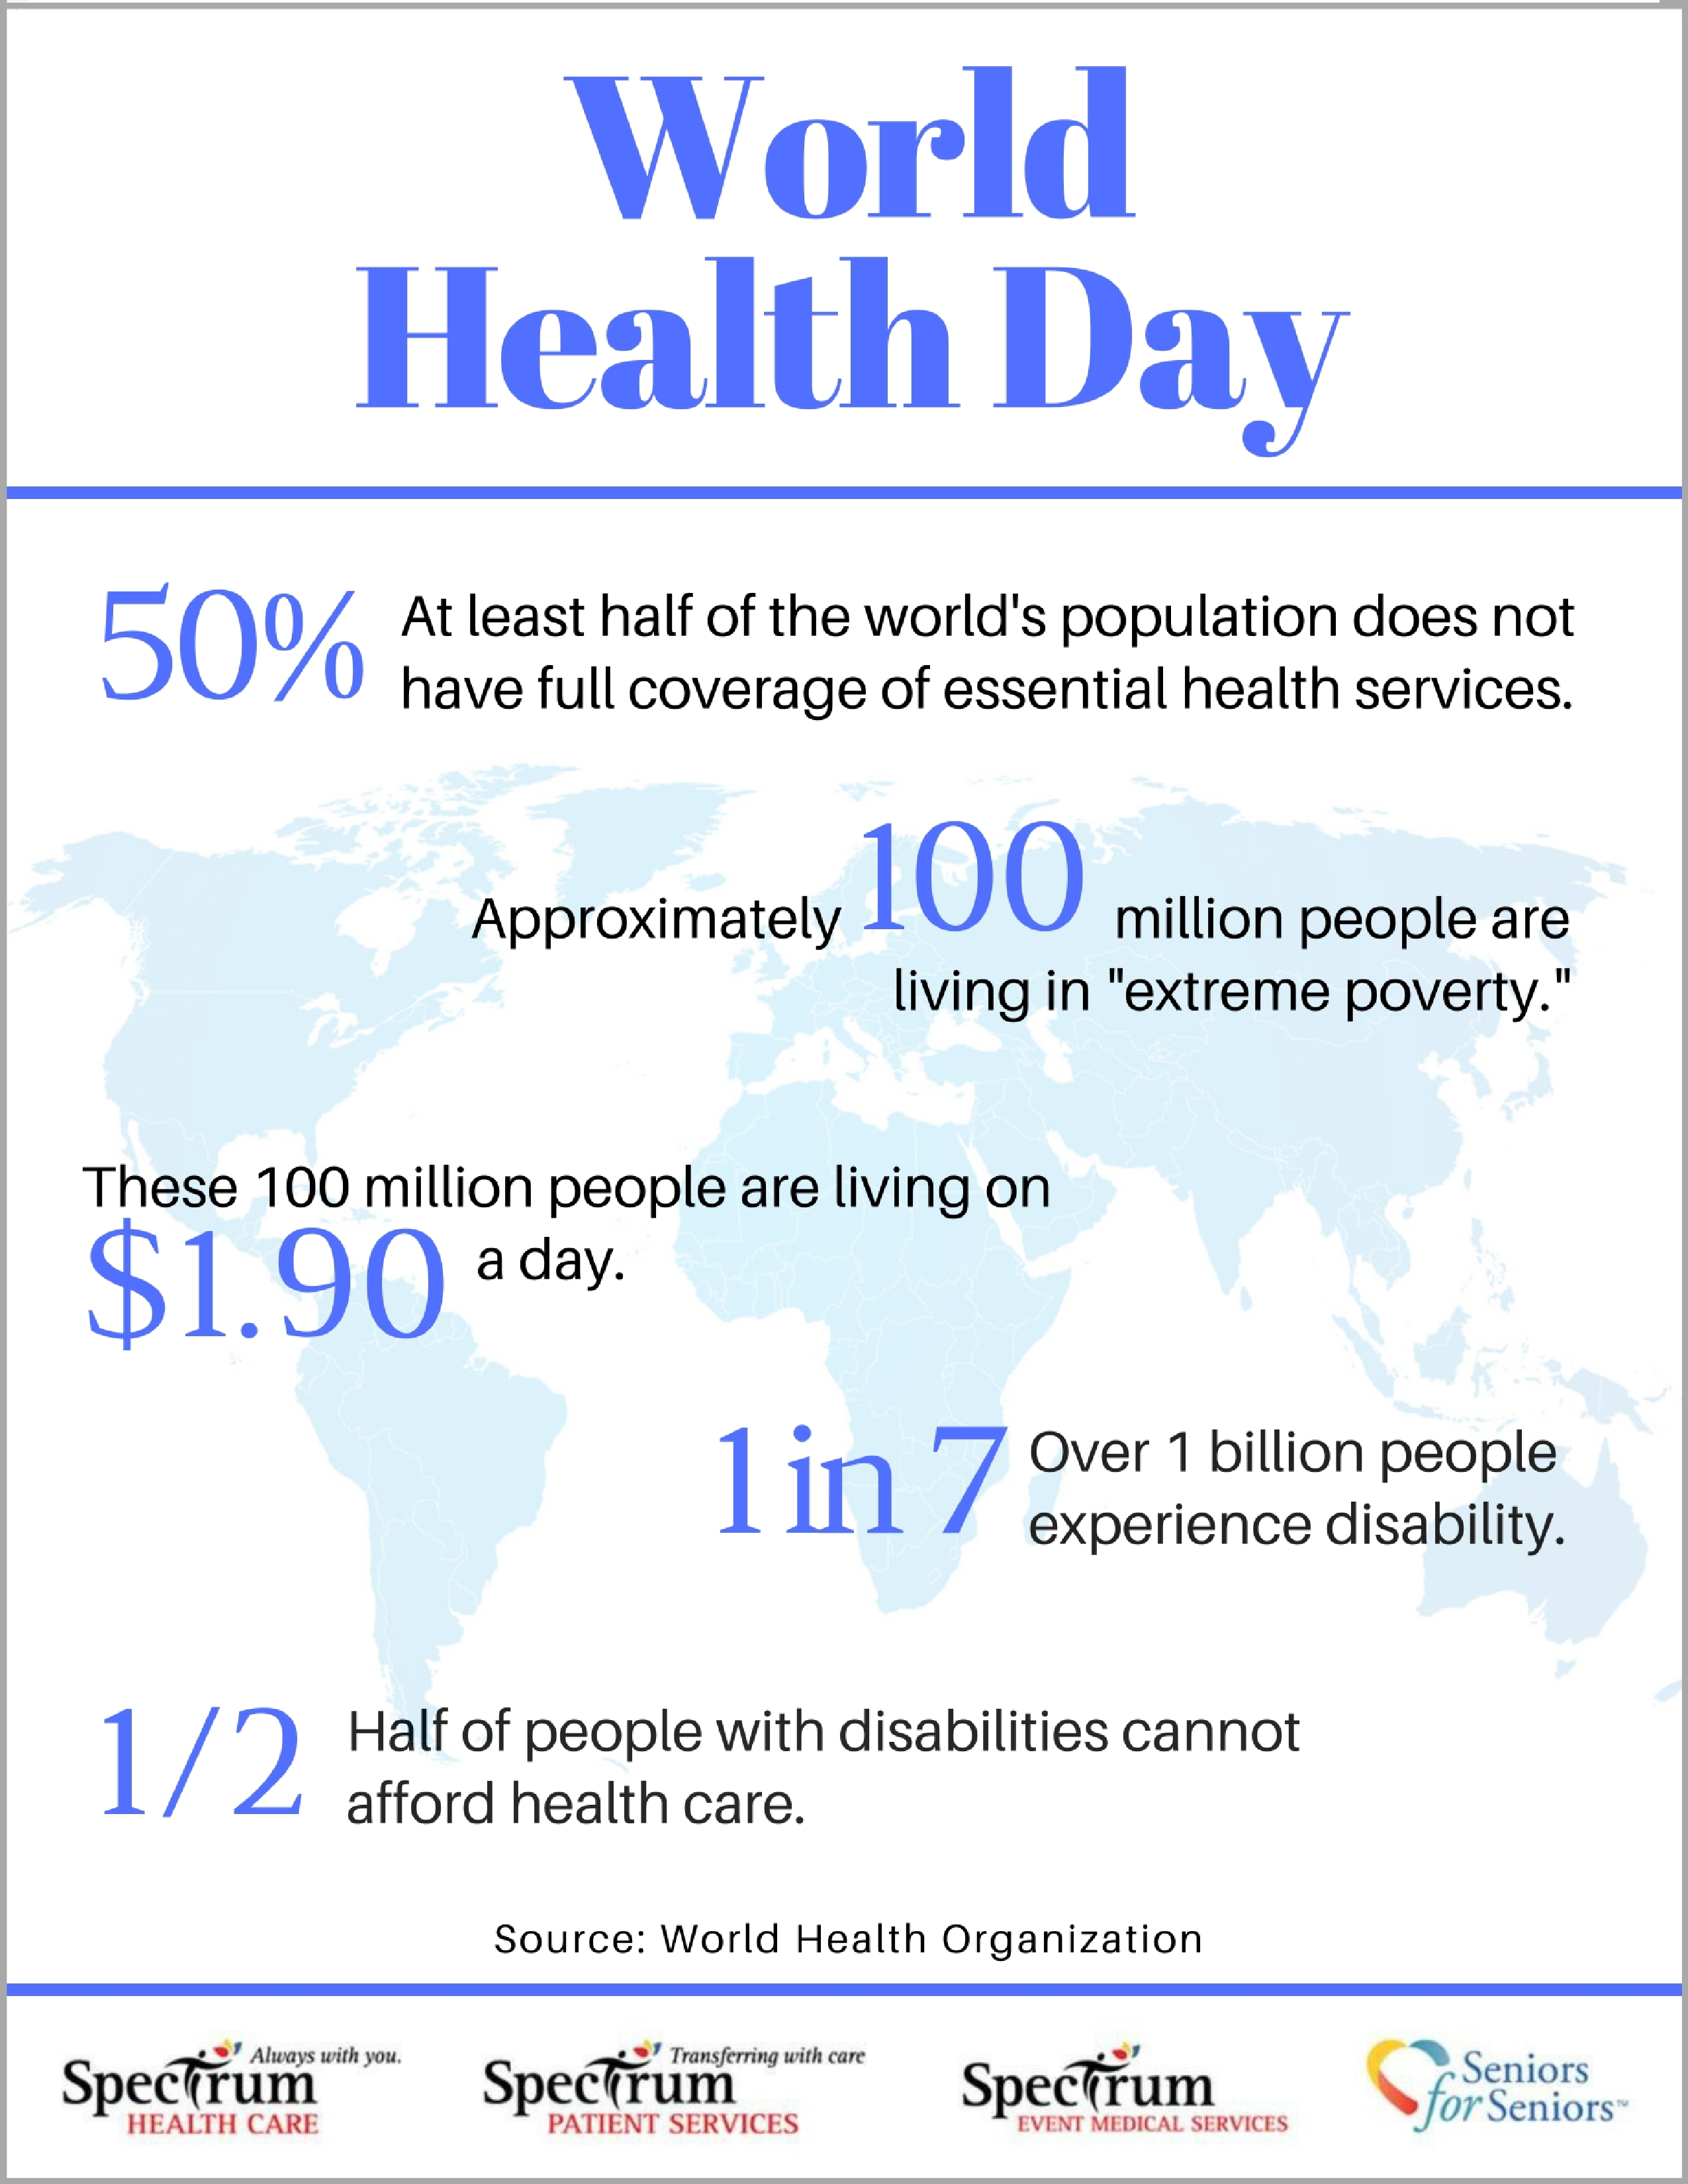 Image: World Health Day is today!